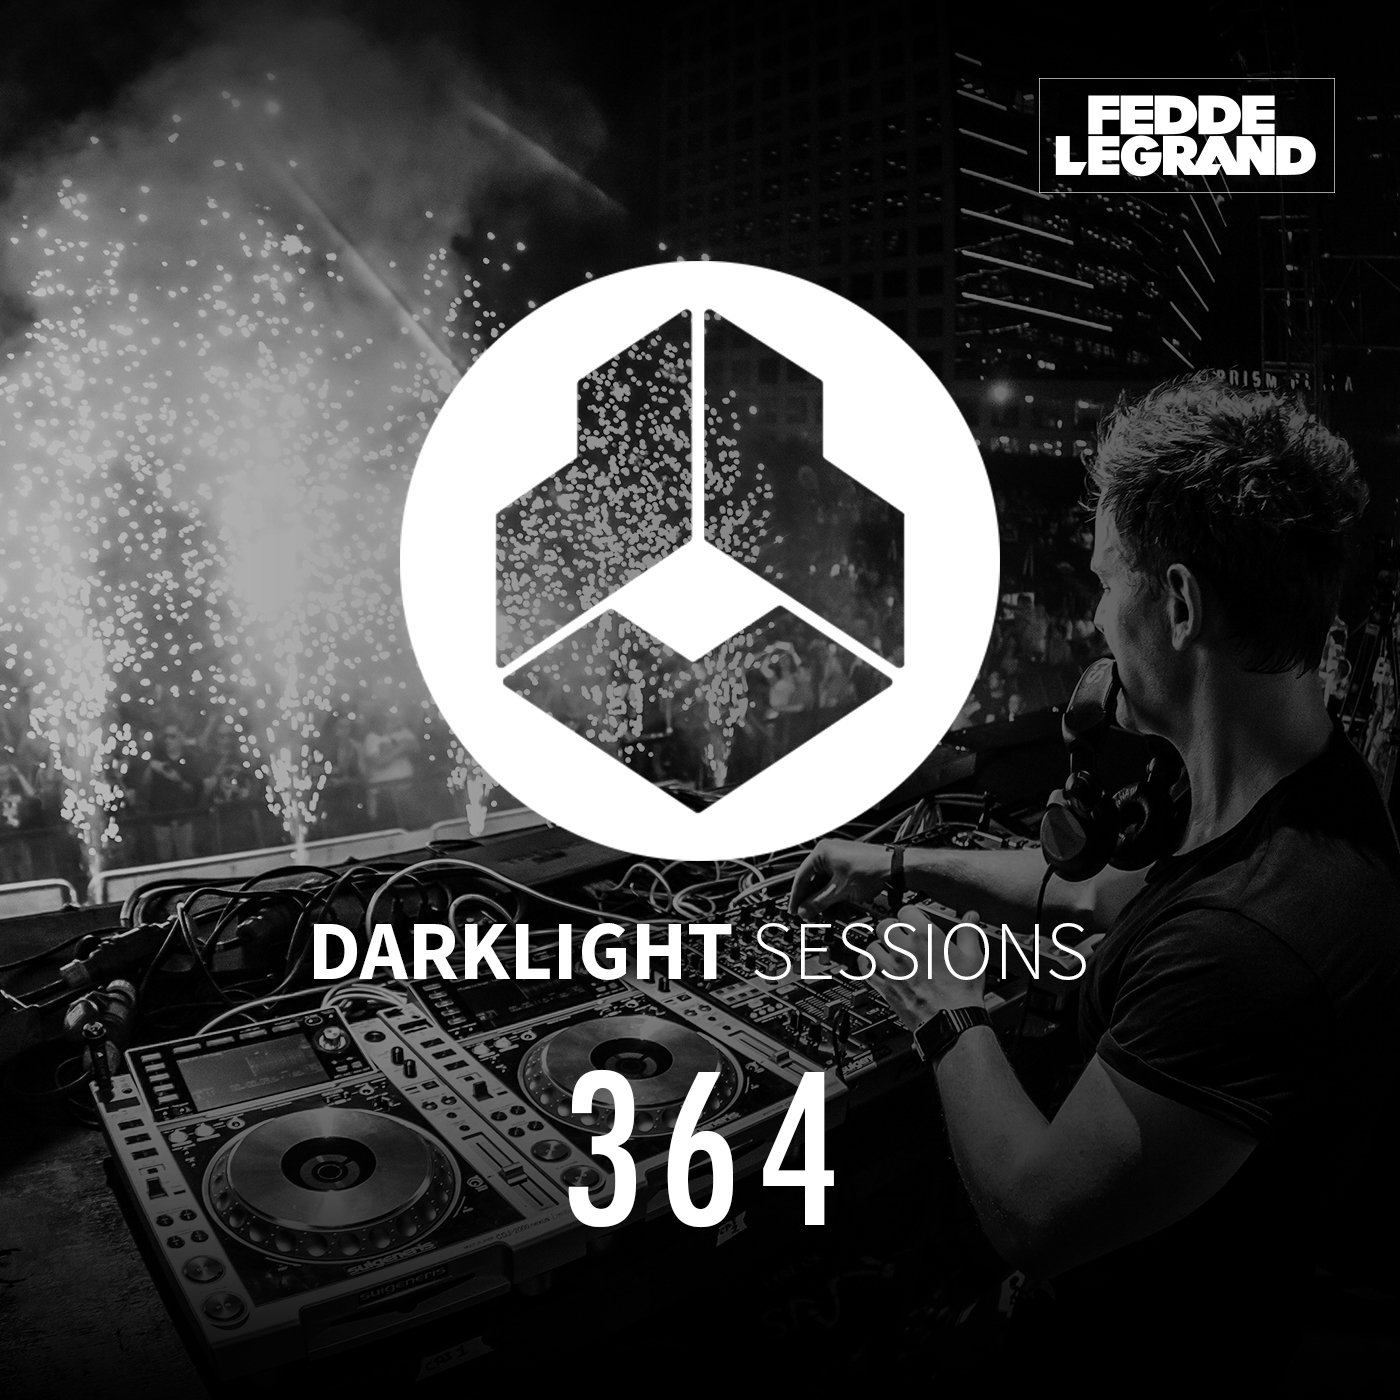 Darklight Sessions 364